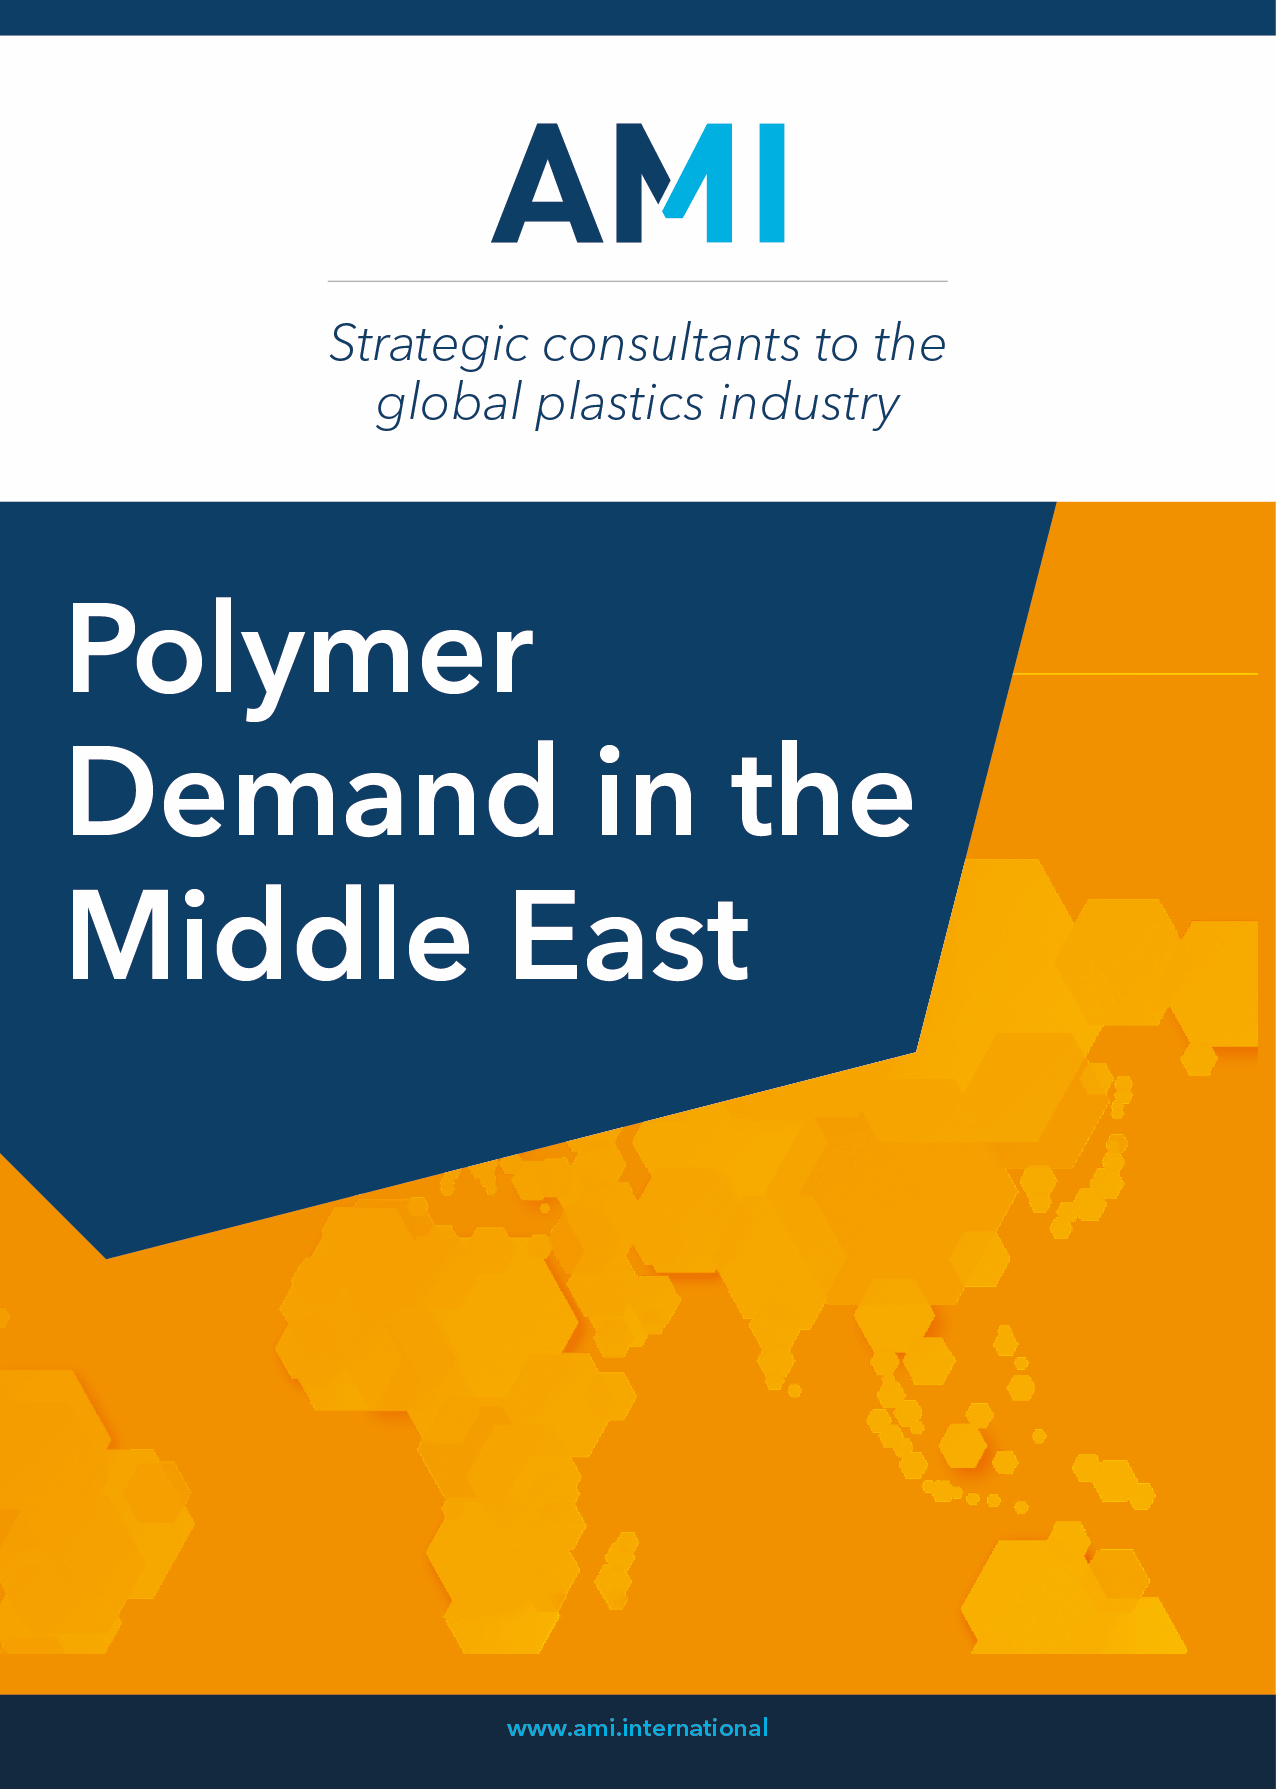 Polymer demand in the Middle East